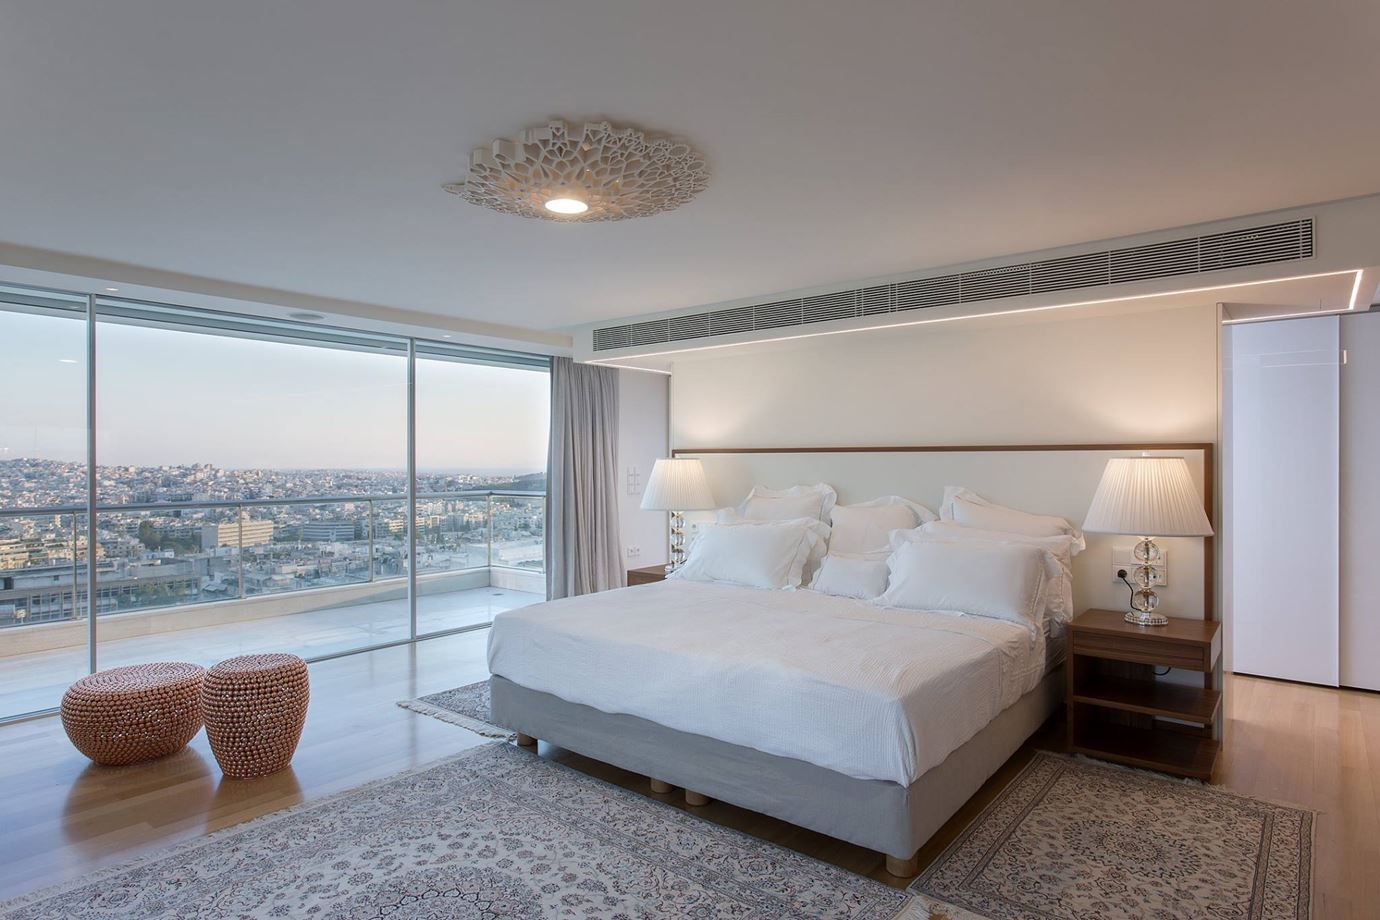 1556710909 144 make your windows the star of the room with these bedroom curtain ideas - Make your Windows the Star of the Room With These Bedroom Curtain Ideas